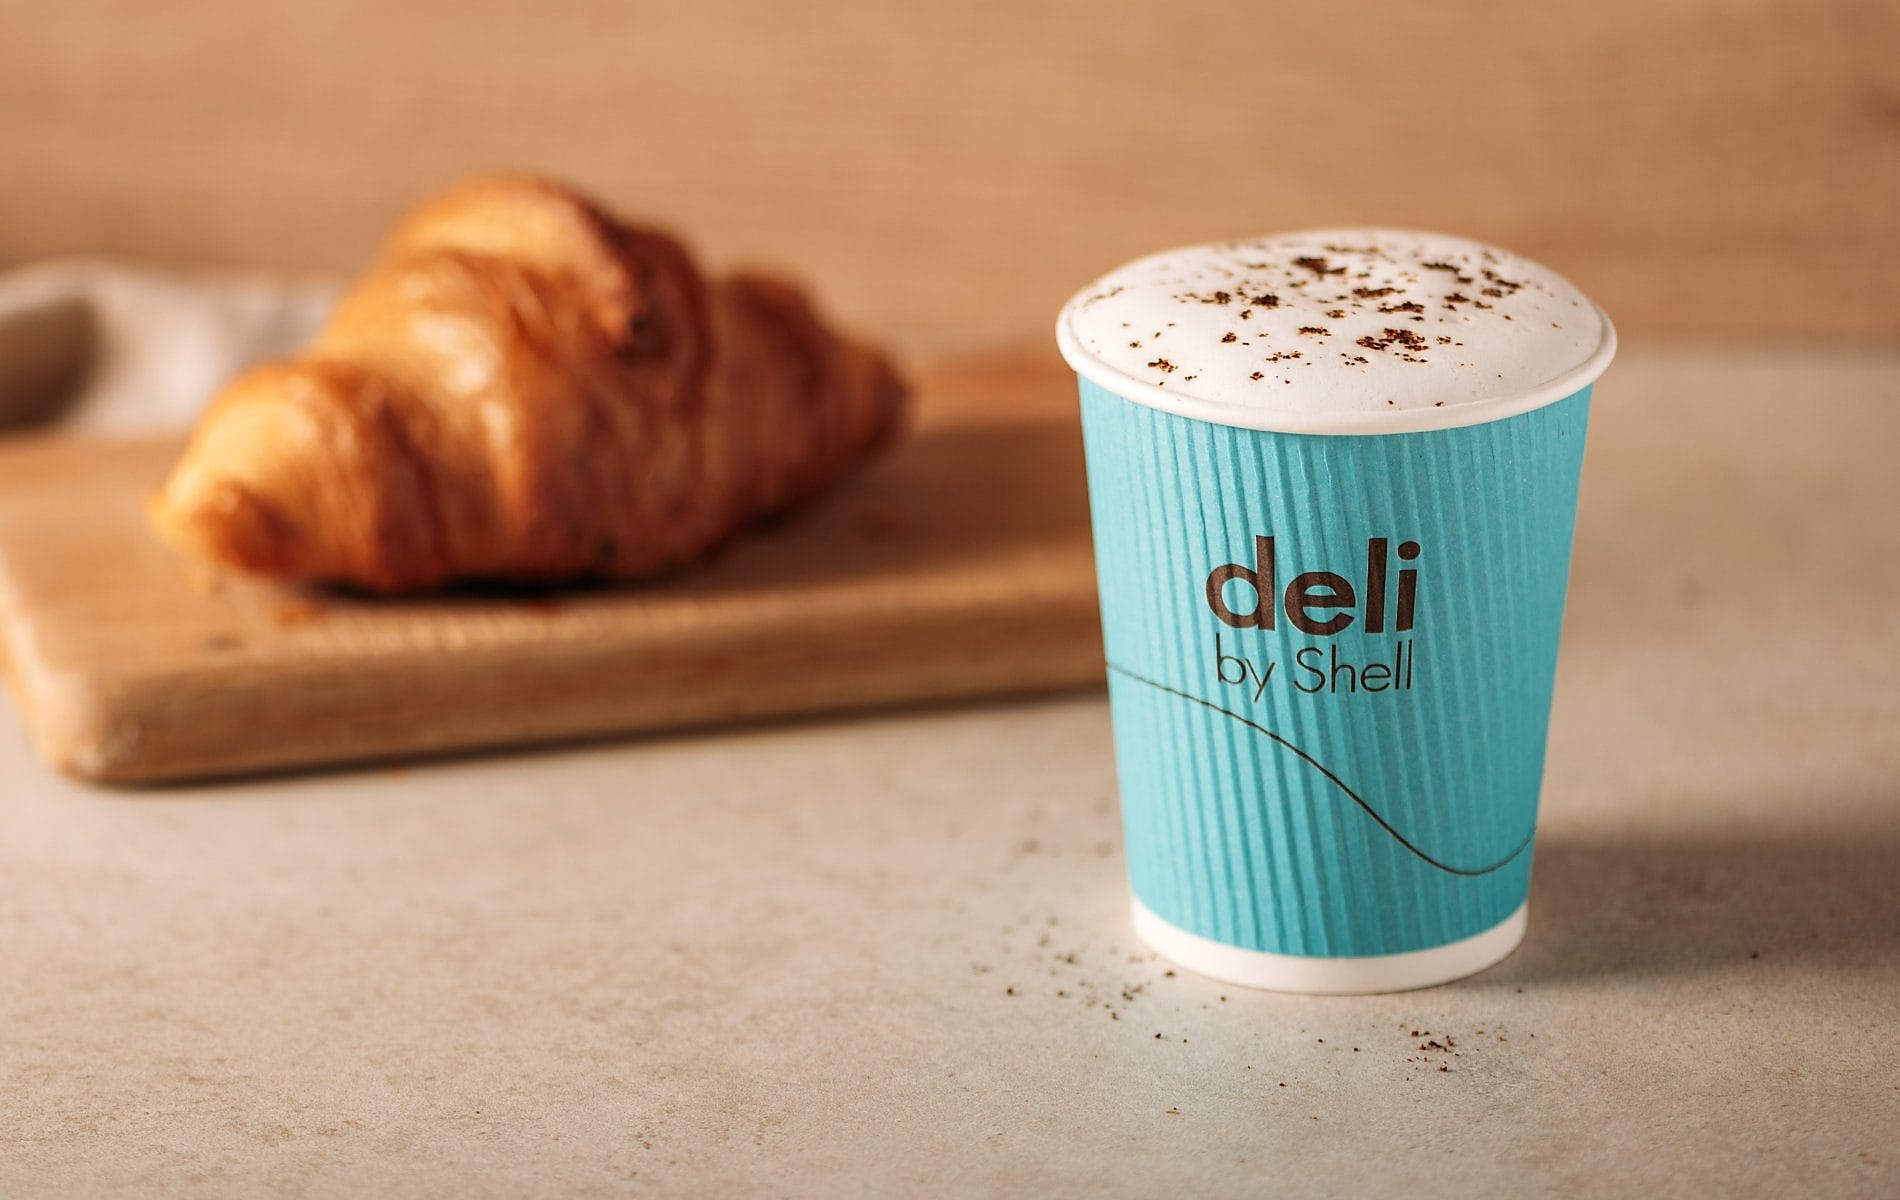 Deli by shell coffee